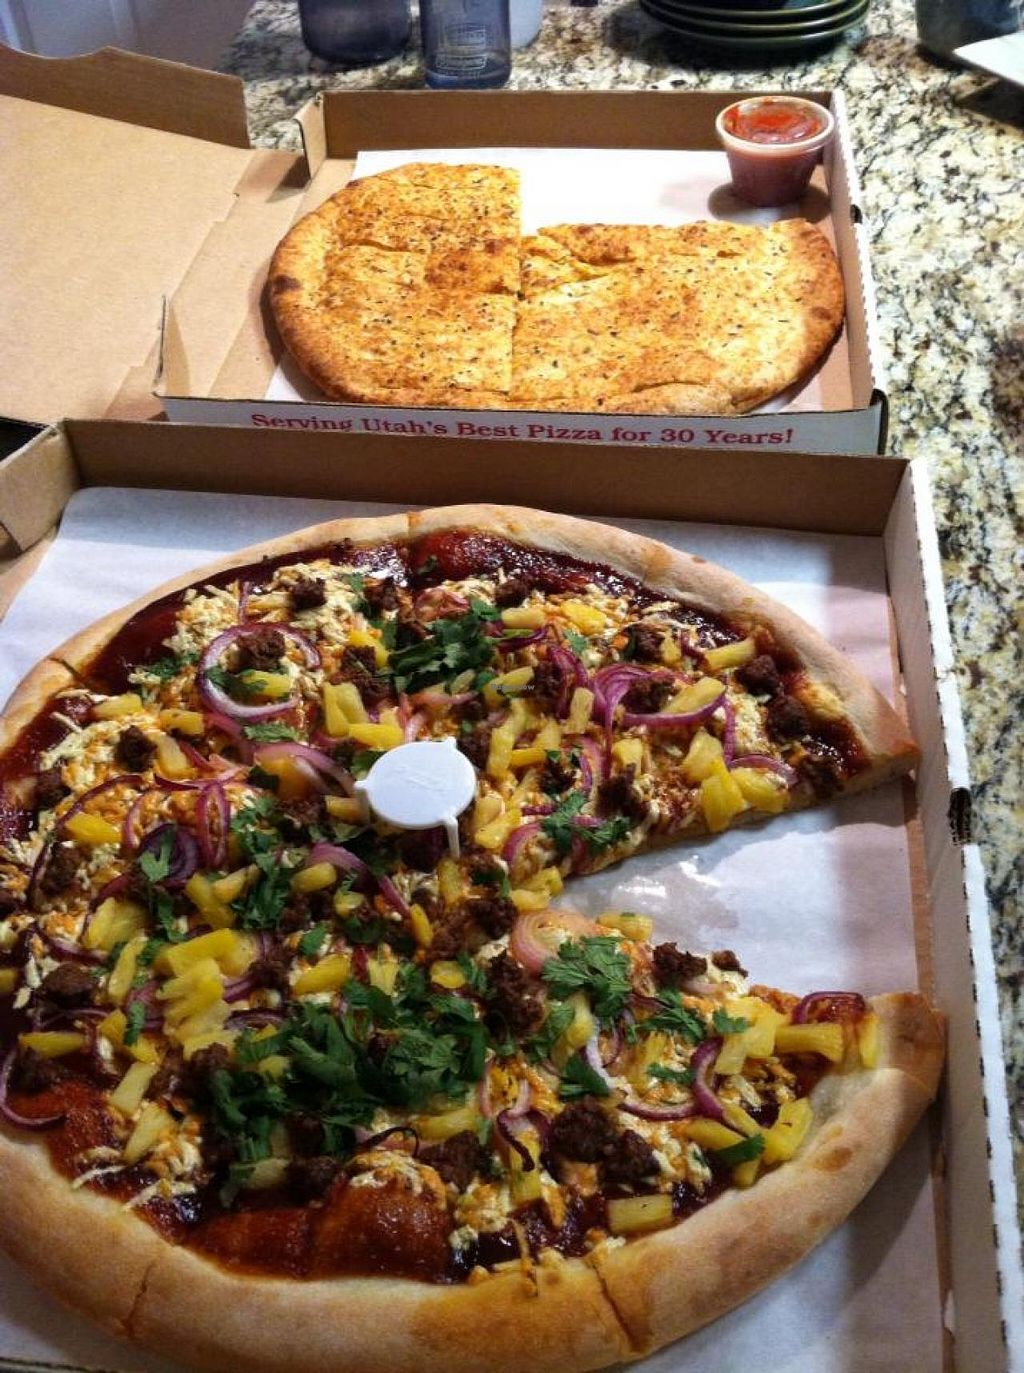 """Photo of The Pie  by <a href=""""/members/profile/Meggie%20and%20Ben"""">Meggie and Ben</a> <br/>Vegan BBQ pizza with 'beef' and vegan cheese sticks <br/> January 11, 2014  - <a href='/contact/abuse/image/35972/62304'>Report</a>"""